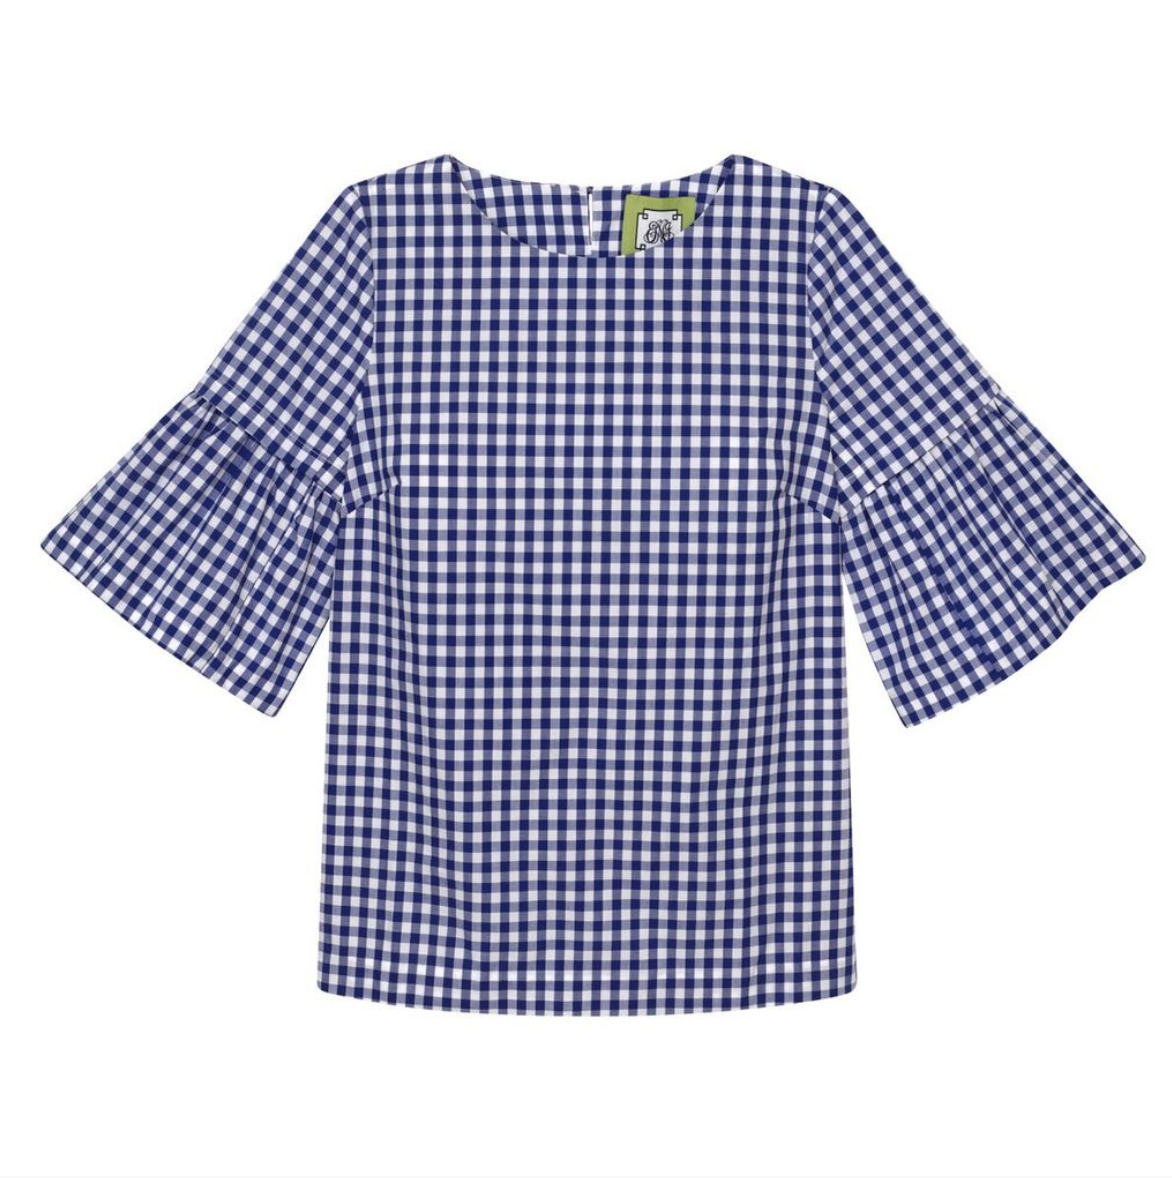 (New with Tags) Elizabeth McKay Gingham Top, Size XS